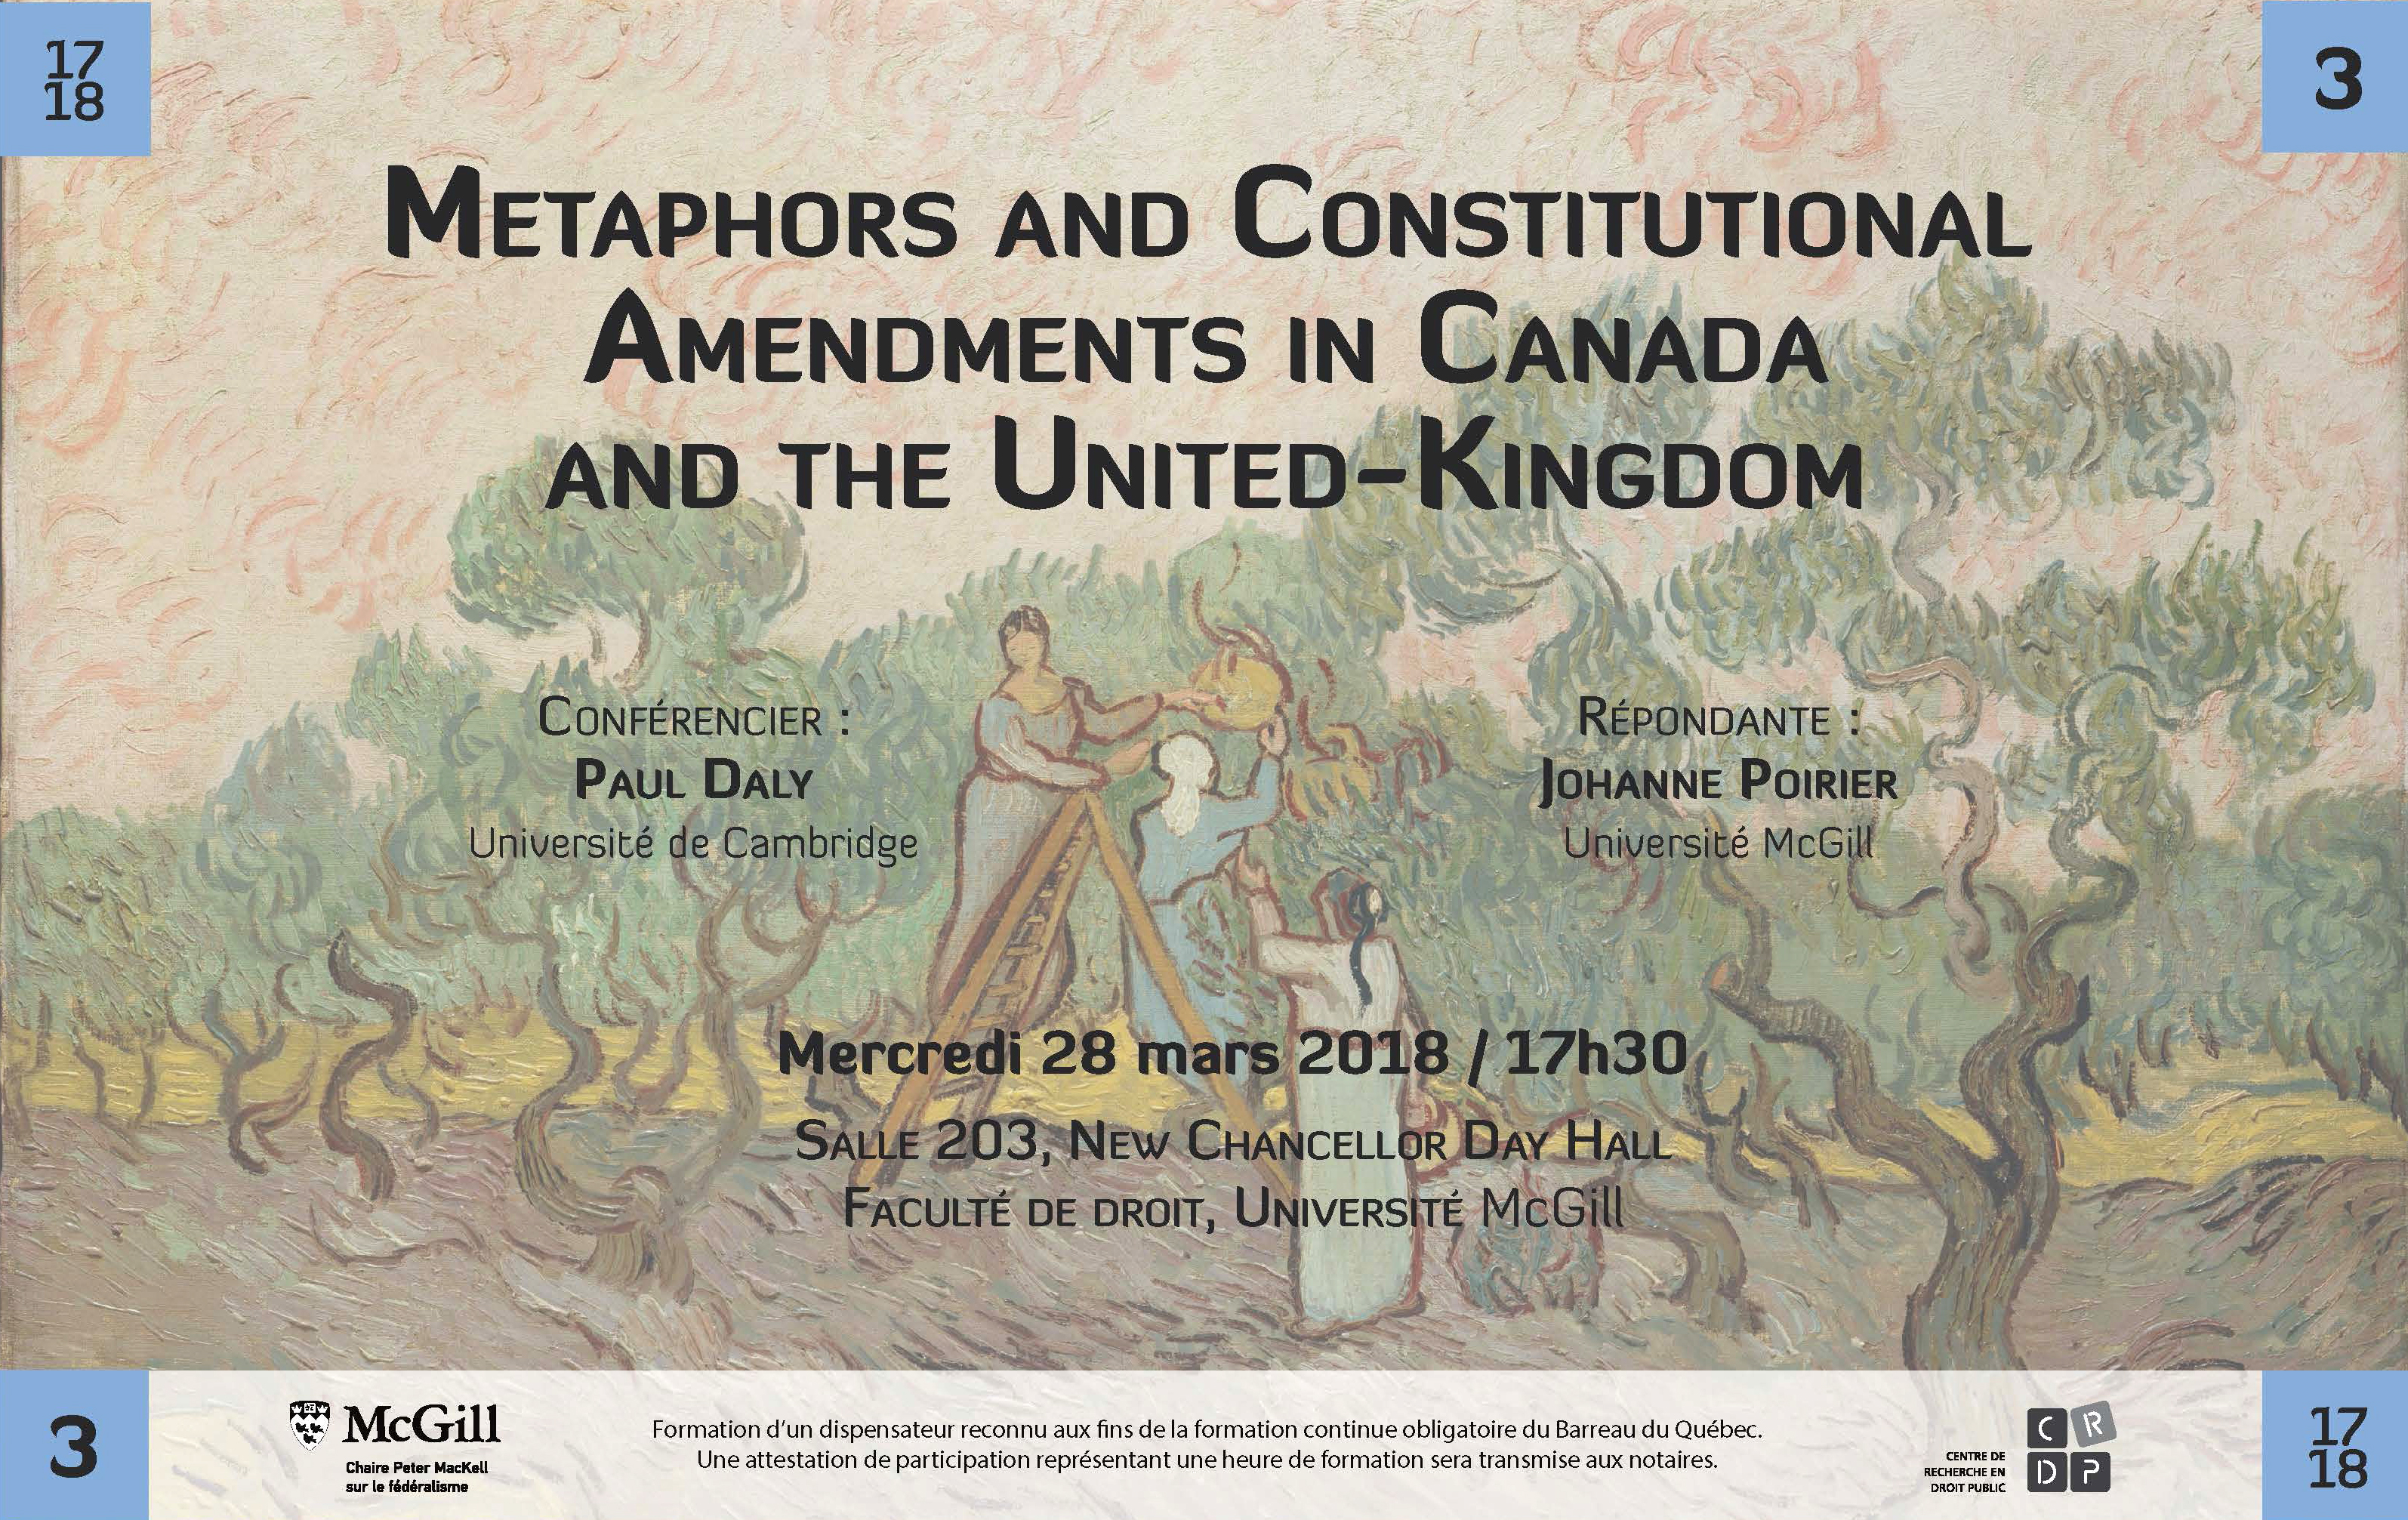 28 March 2018: Metaphors and Constitutional Amendments in Canada and the UK, with Paul Daly, Cambridge U.